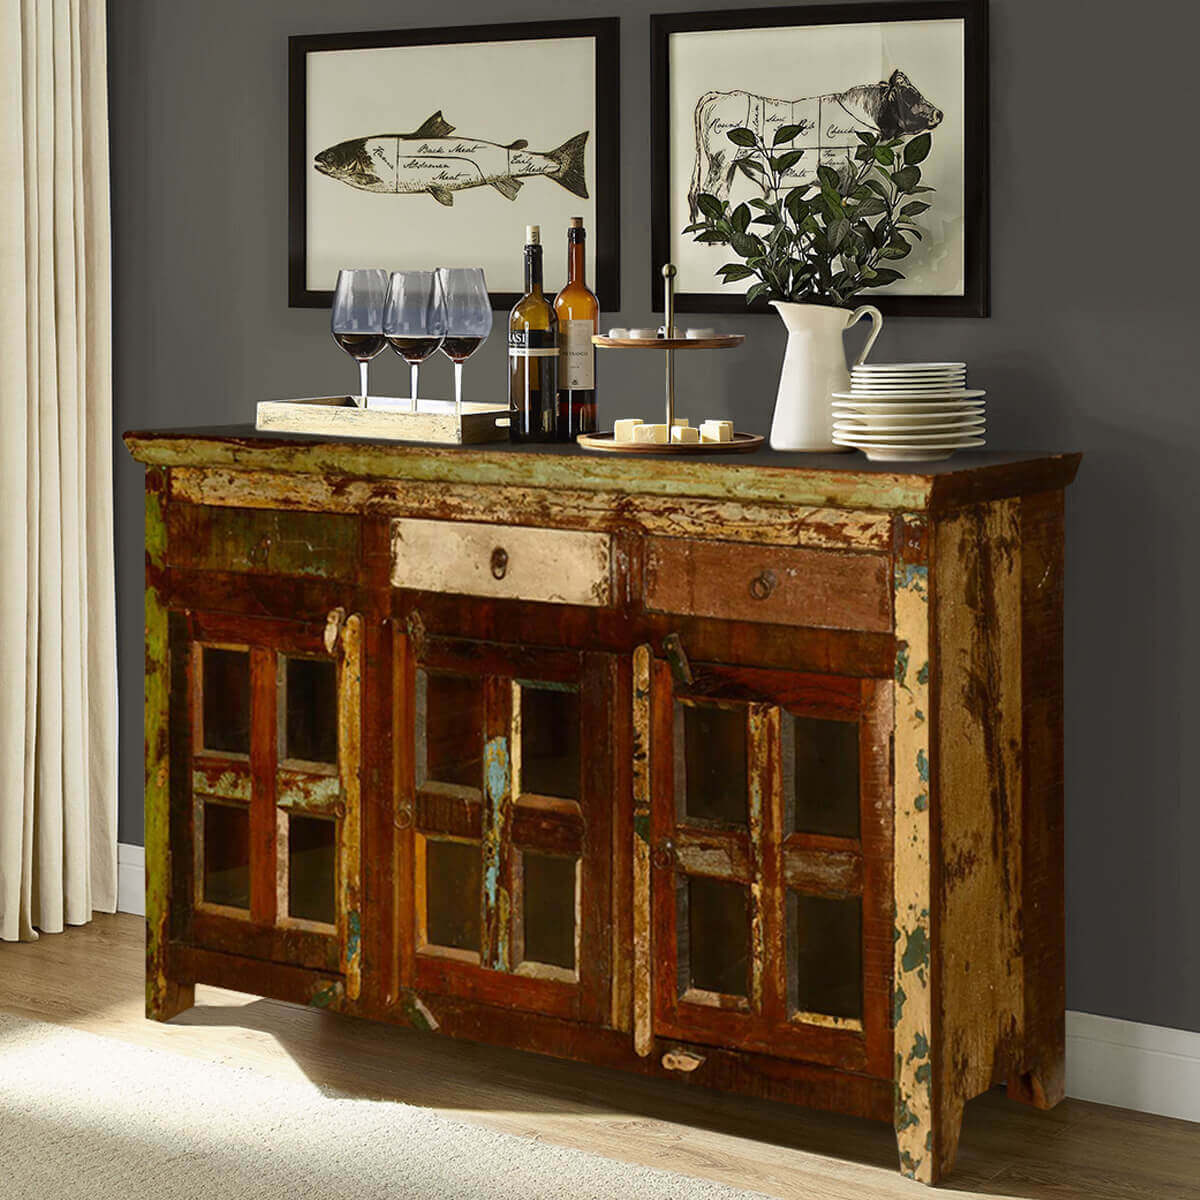 Appalachian Rustic Reclaimed Wood Window Pane Buffet